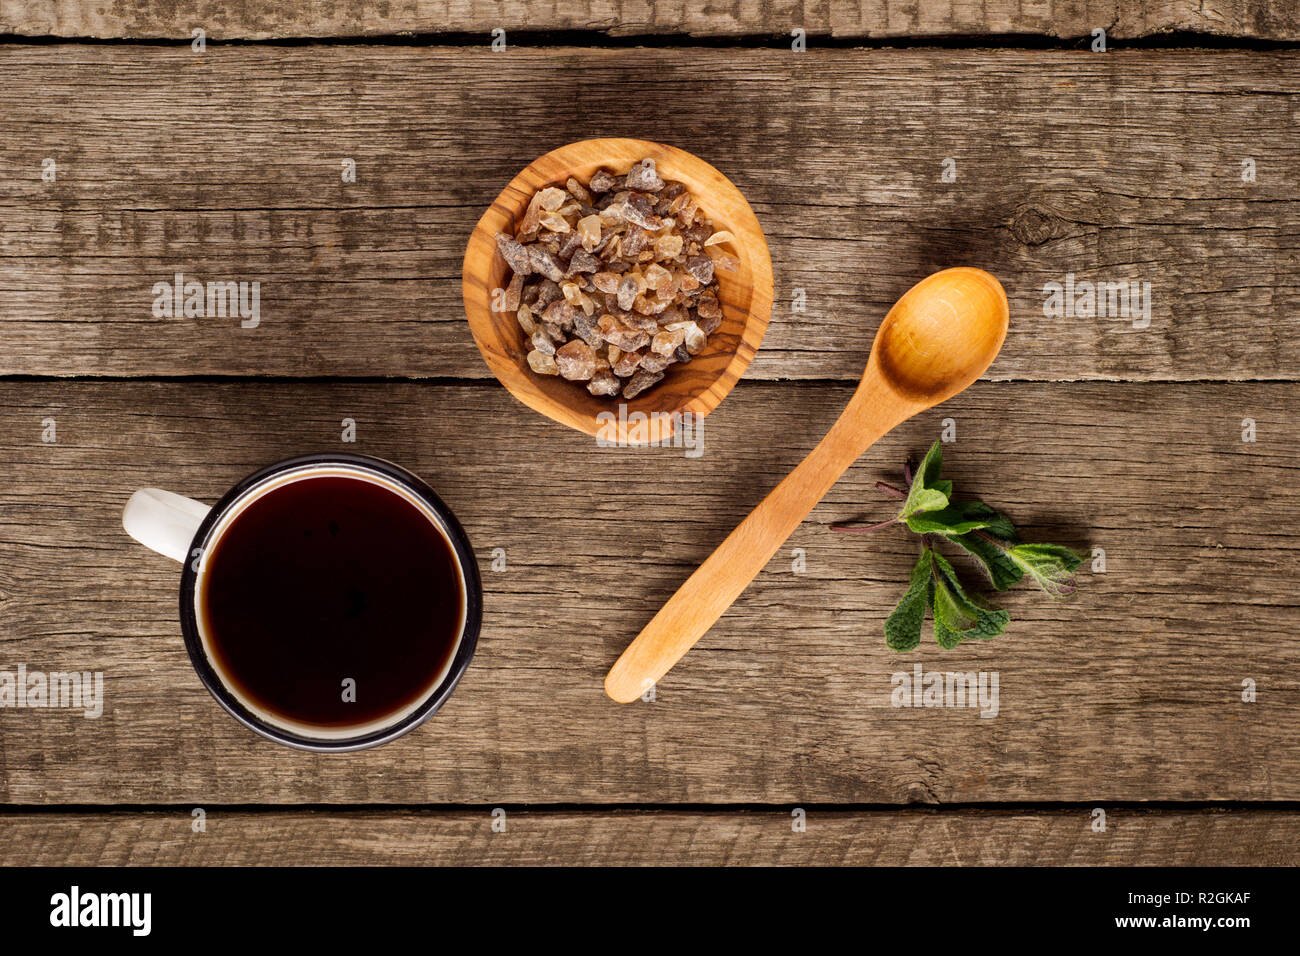 Tea cup with mint leaf and brown sugar in bowl on rustic wooden background. Copy space. Top view Stock Photo